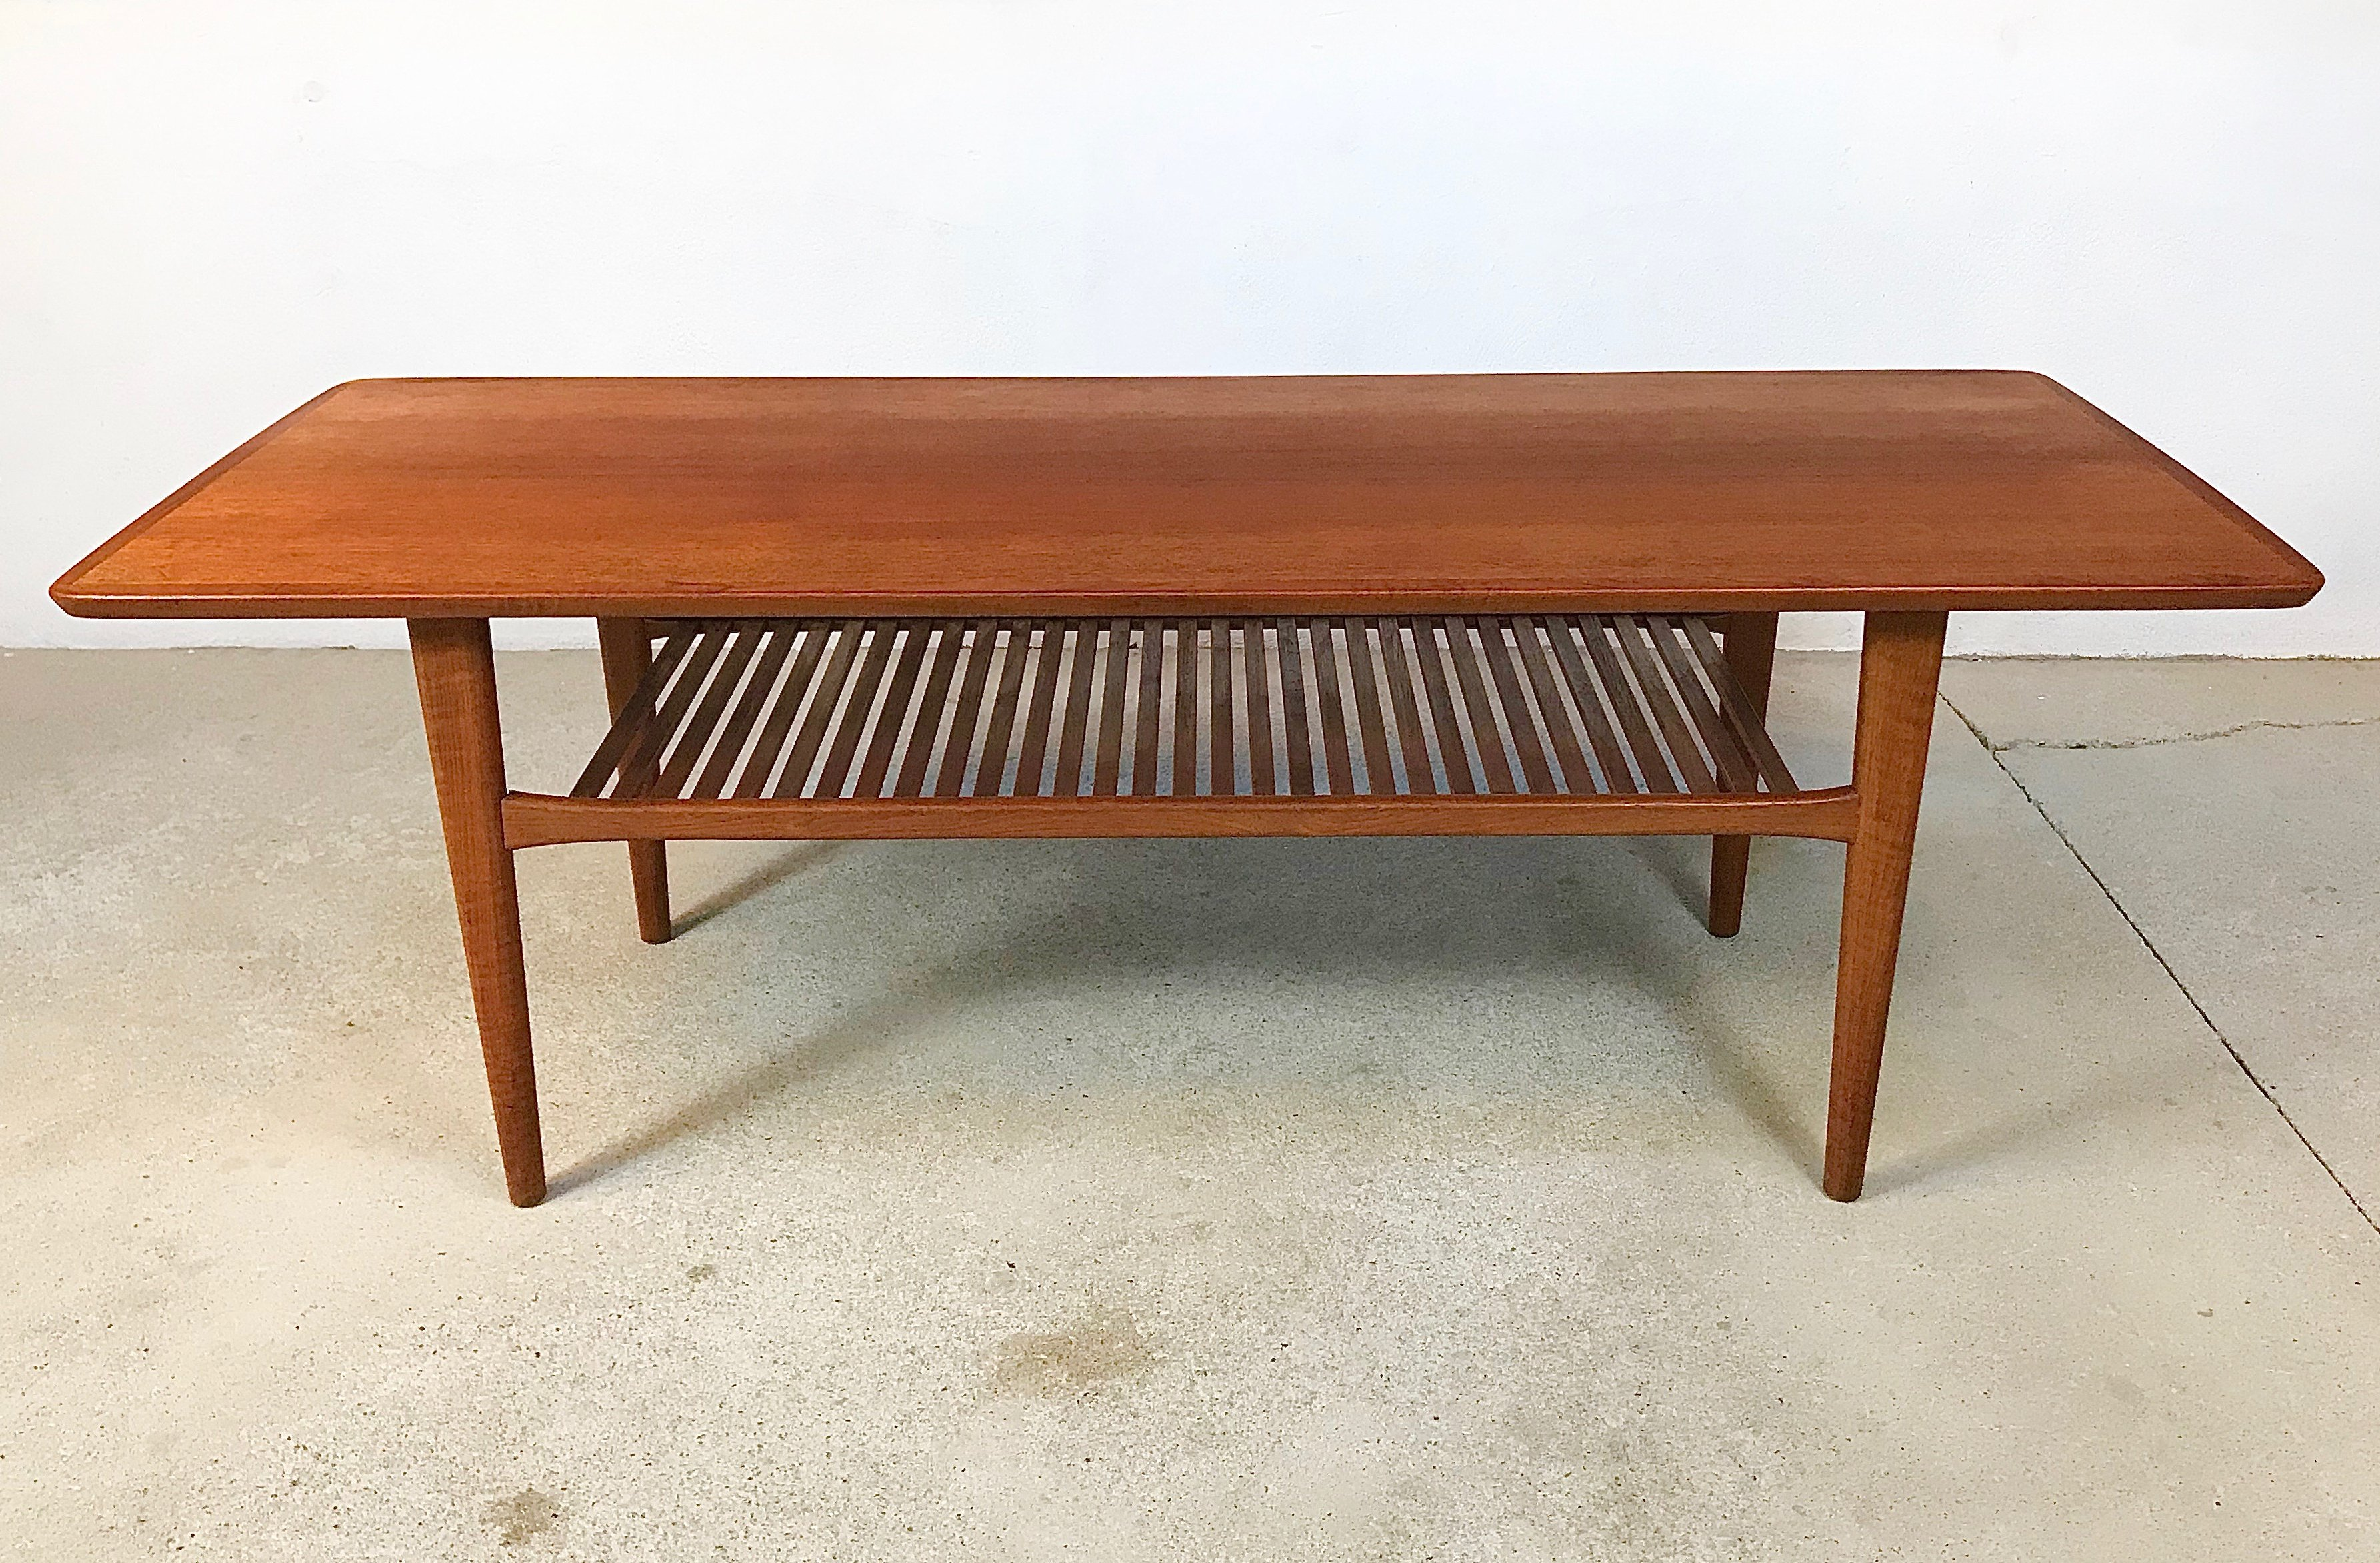 Vintage Danish Teak Coffee Table with Slatted Tray, 1960s ...